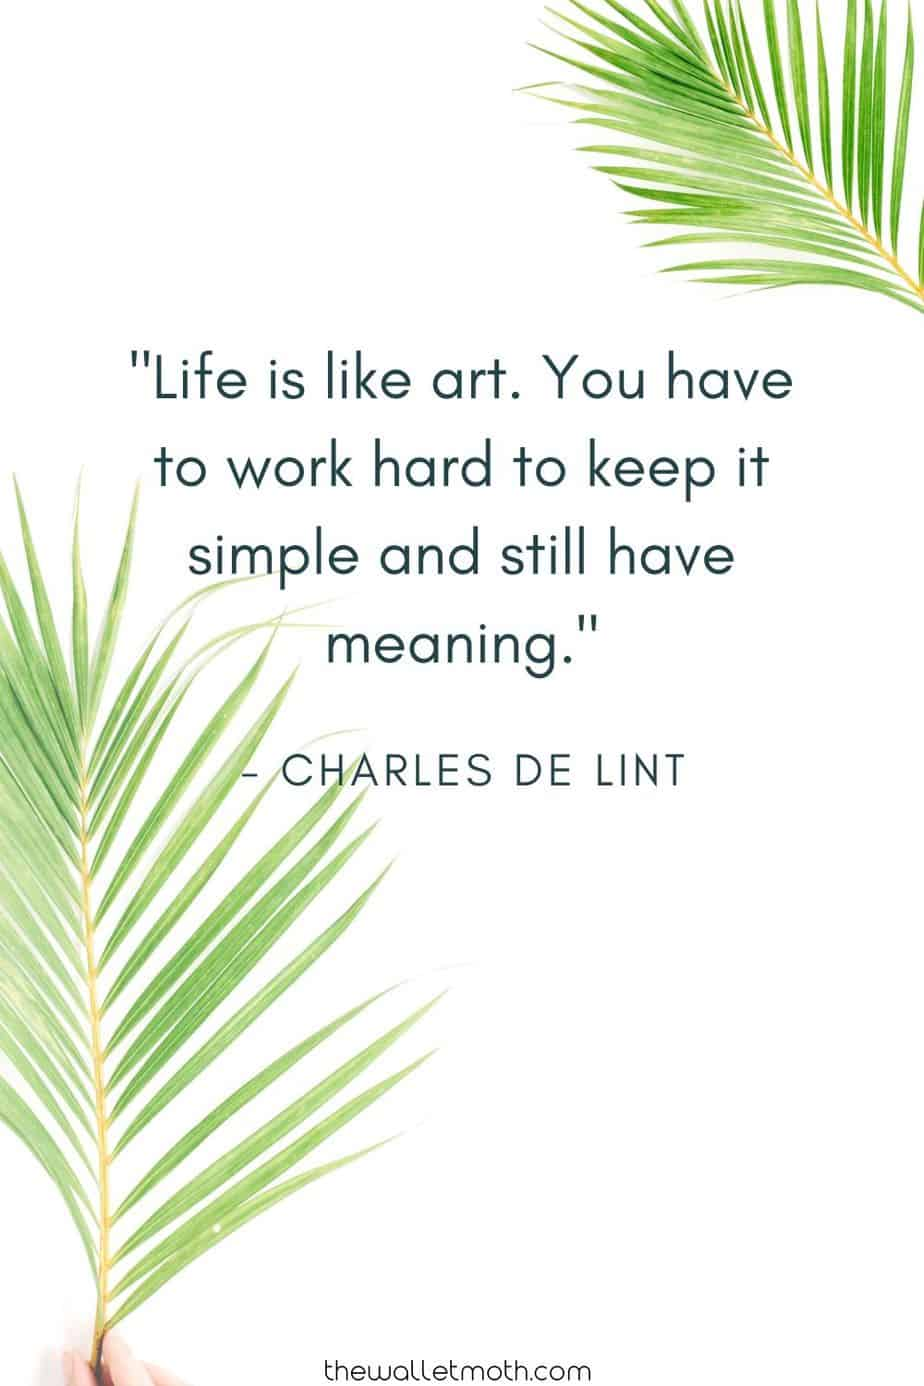 """Life is like art. You have to work hard to keep it simple and still have meaning."" - Charles De Lint"